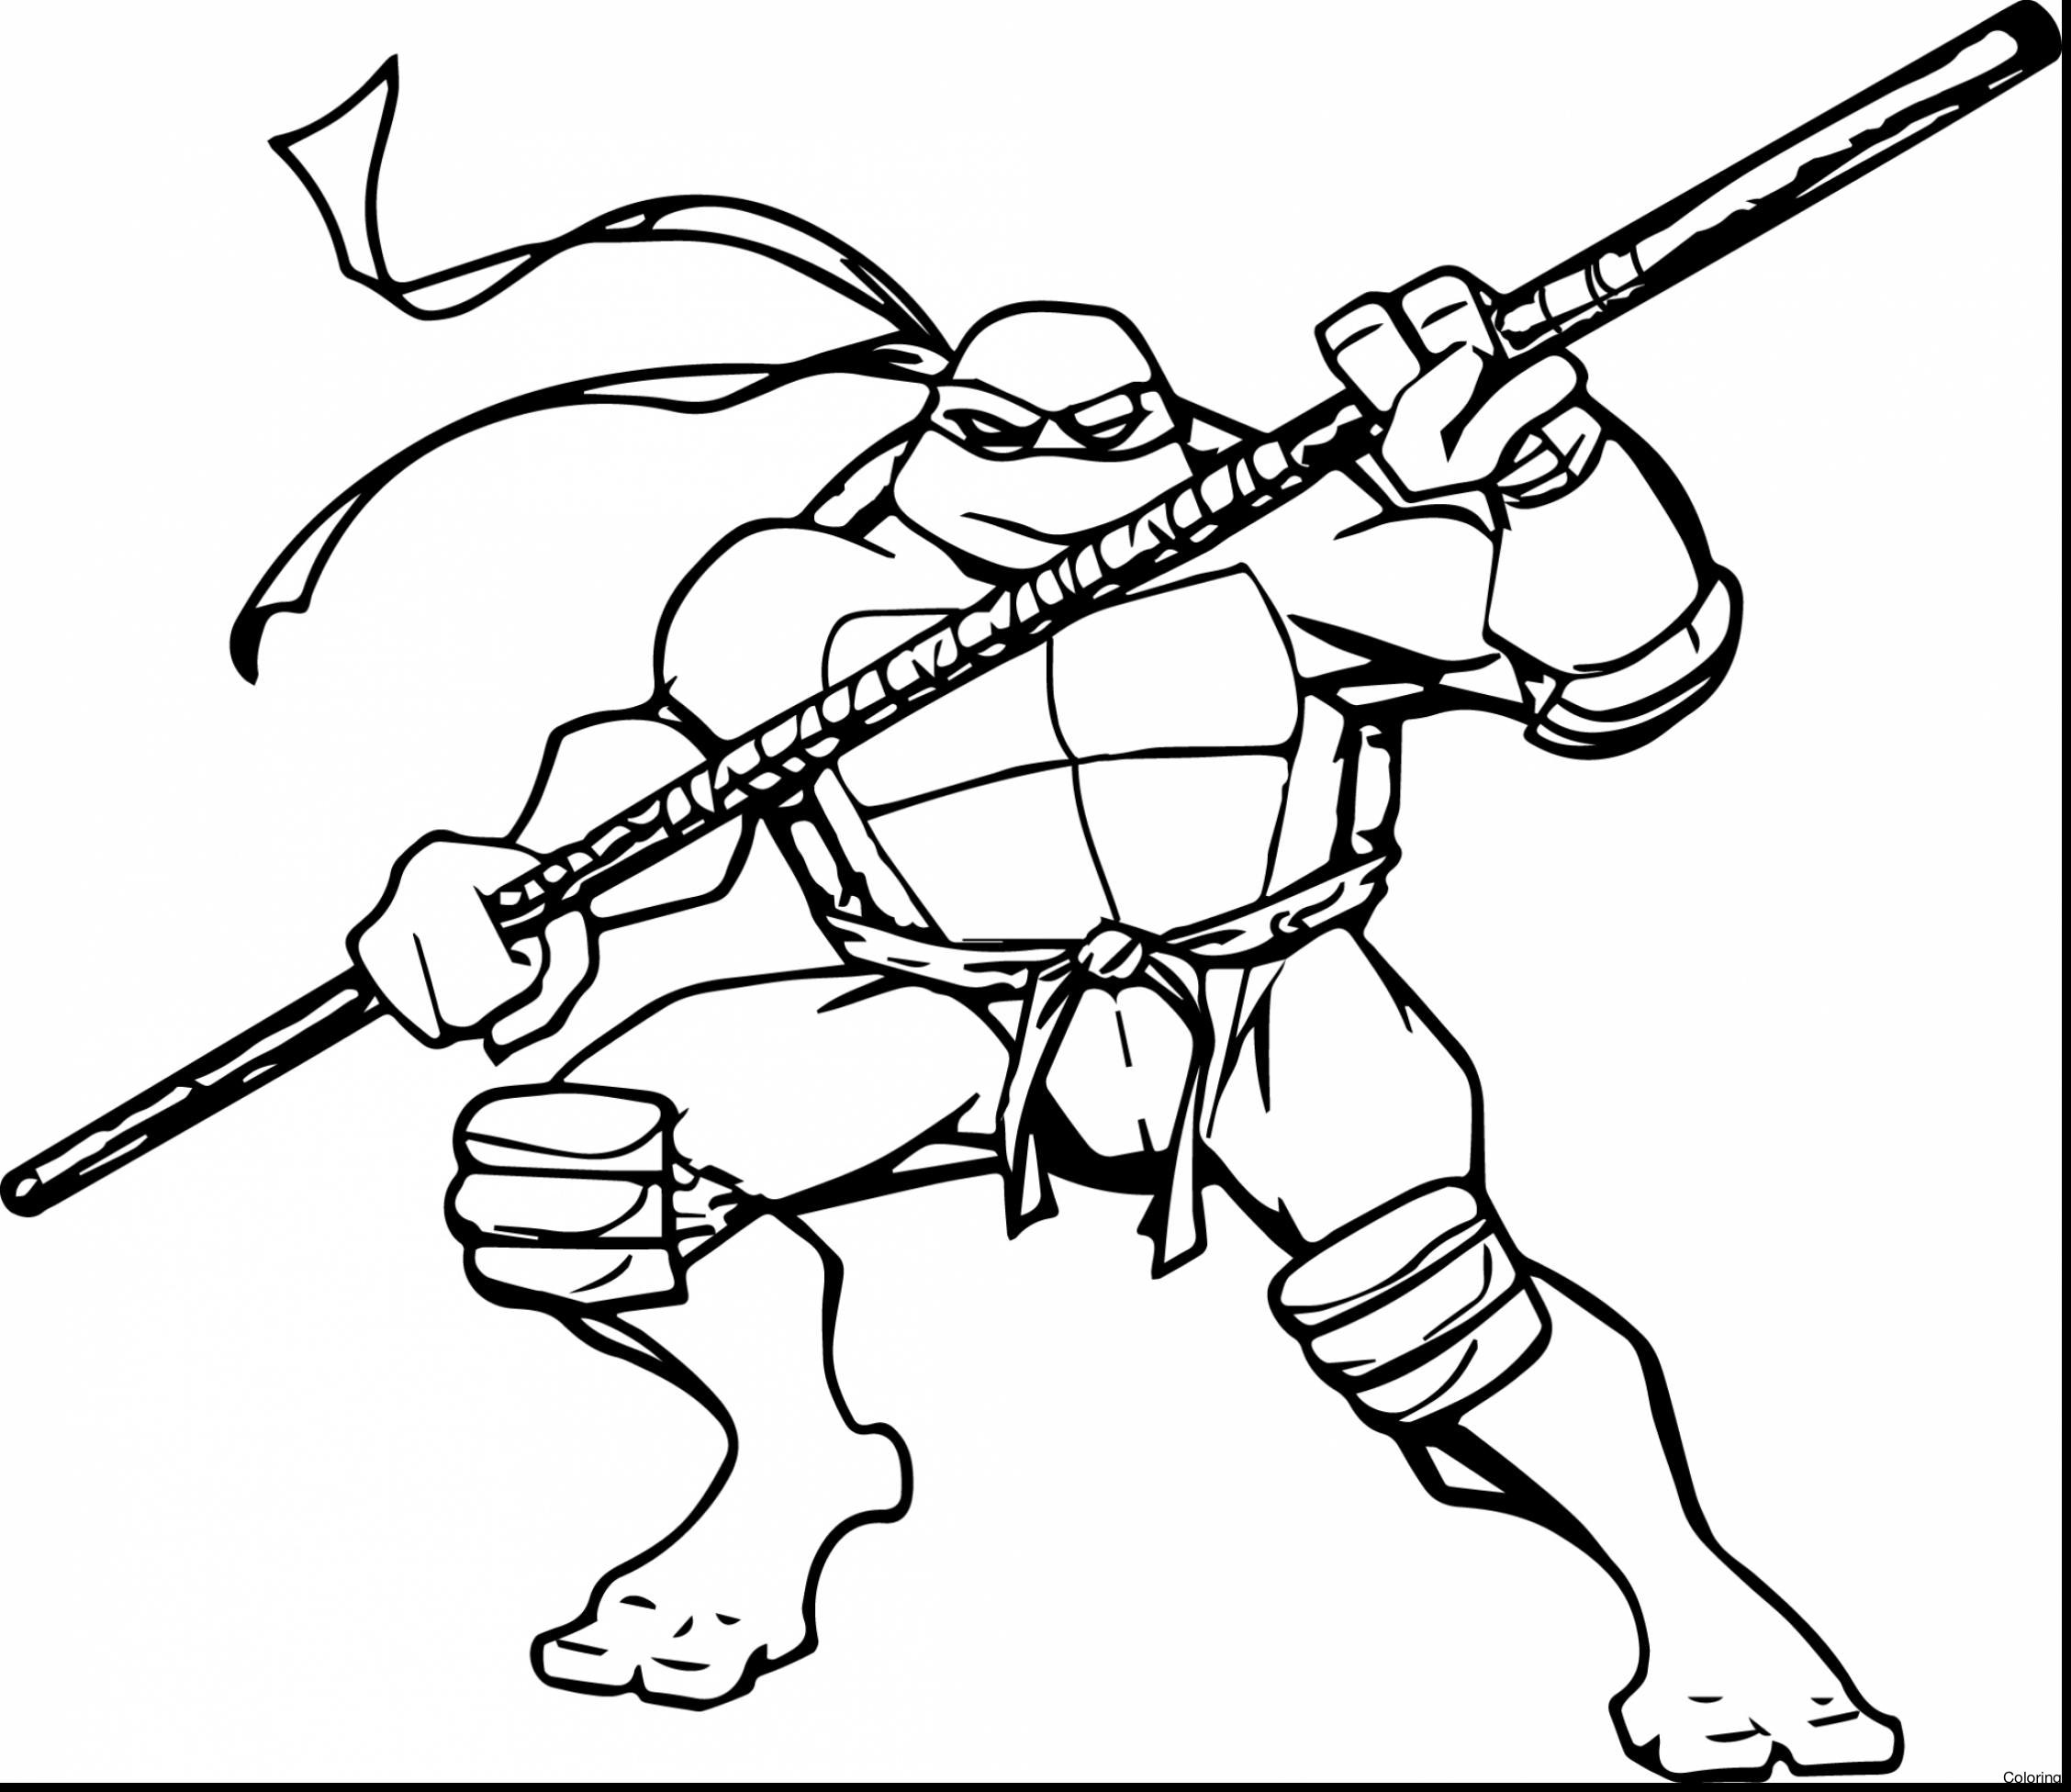 2256x1952 Ninja Turtle Coloring Pages Michelangelo Inspiration Mutant Turtle